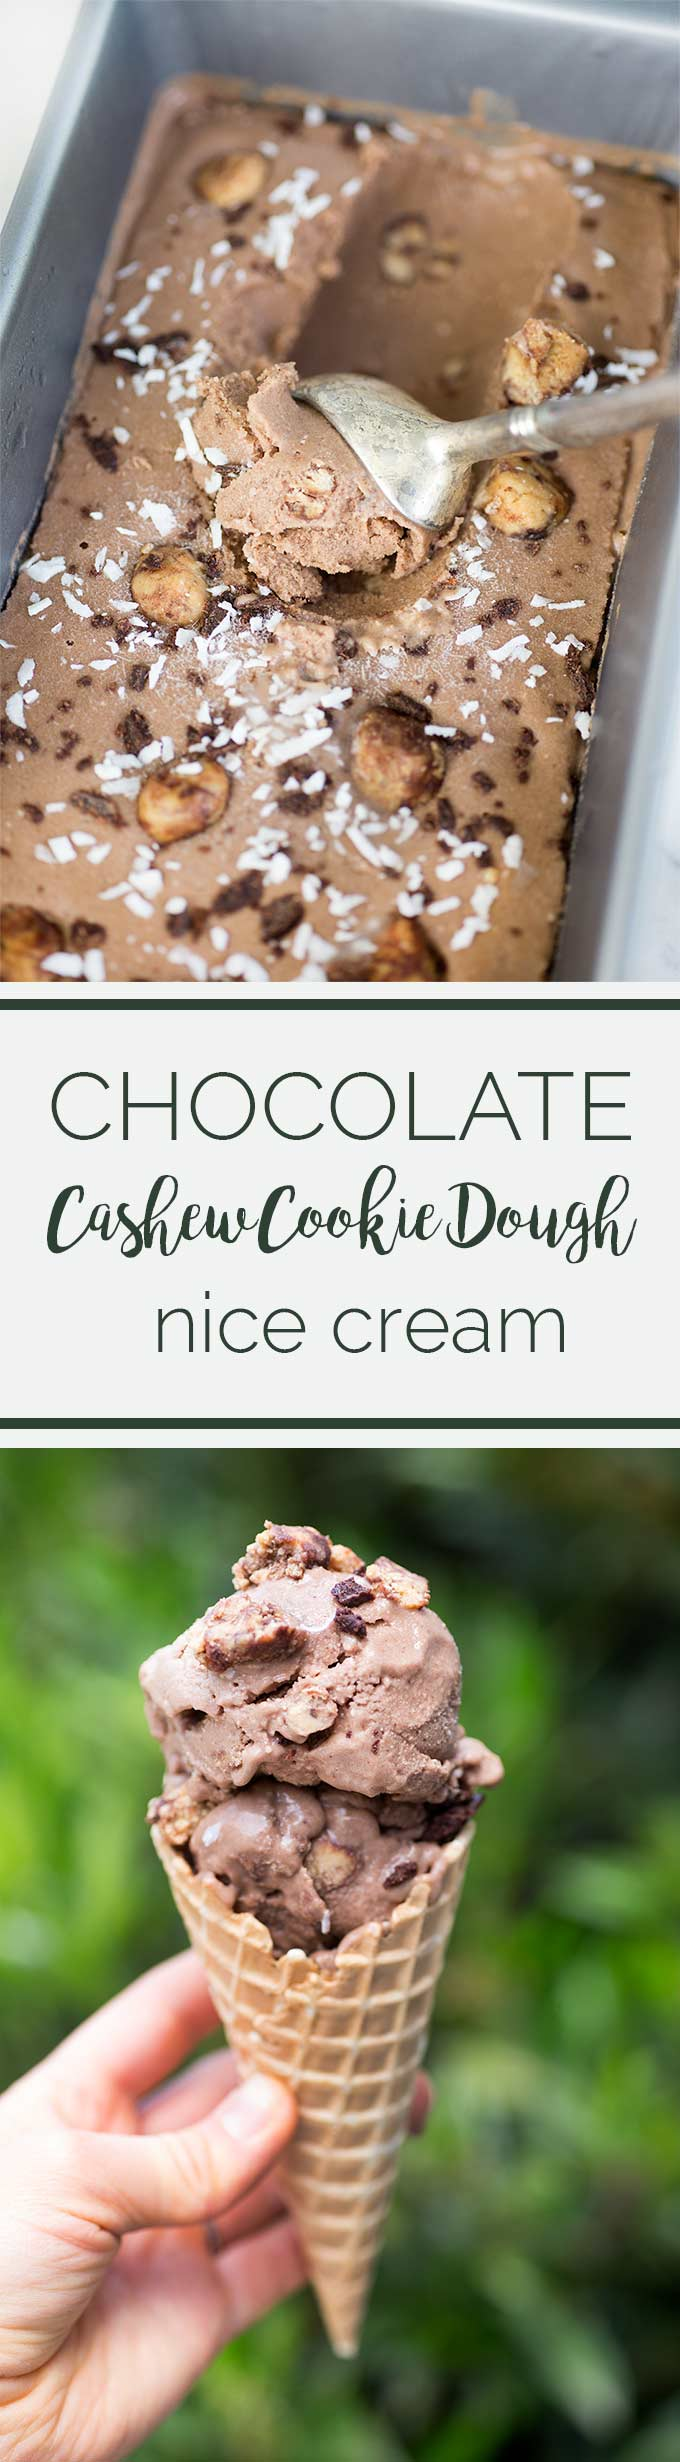 "Chocolate Cashew Cookie Dough Nice Cream - a clean-eater's dream come true. Made with no dairy, gluten or refined sugar, this ""nice cream"" is a real treat."